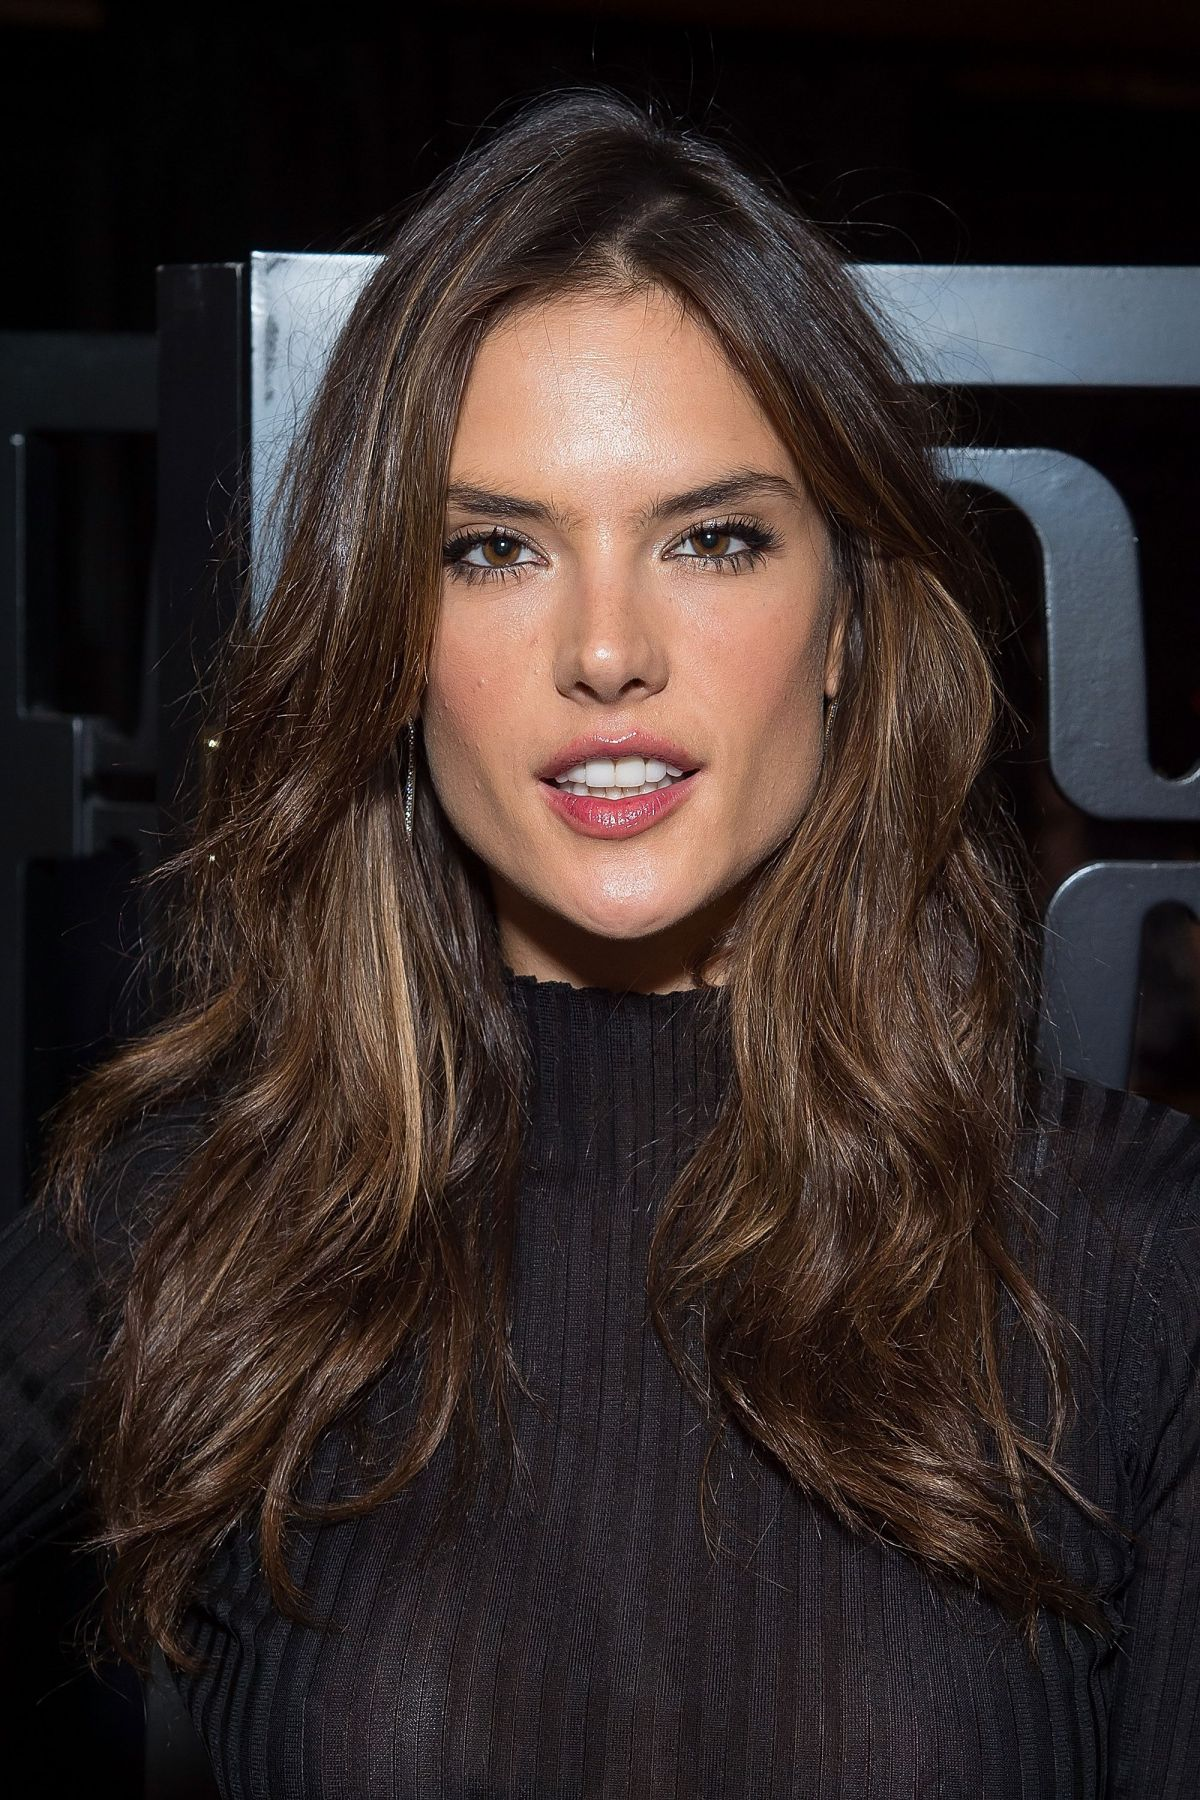 ALESSANDRA AMBROSIO at 2015 Brazilfoundation Cocktail Party in New ...